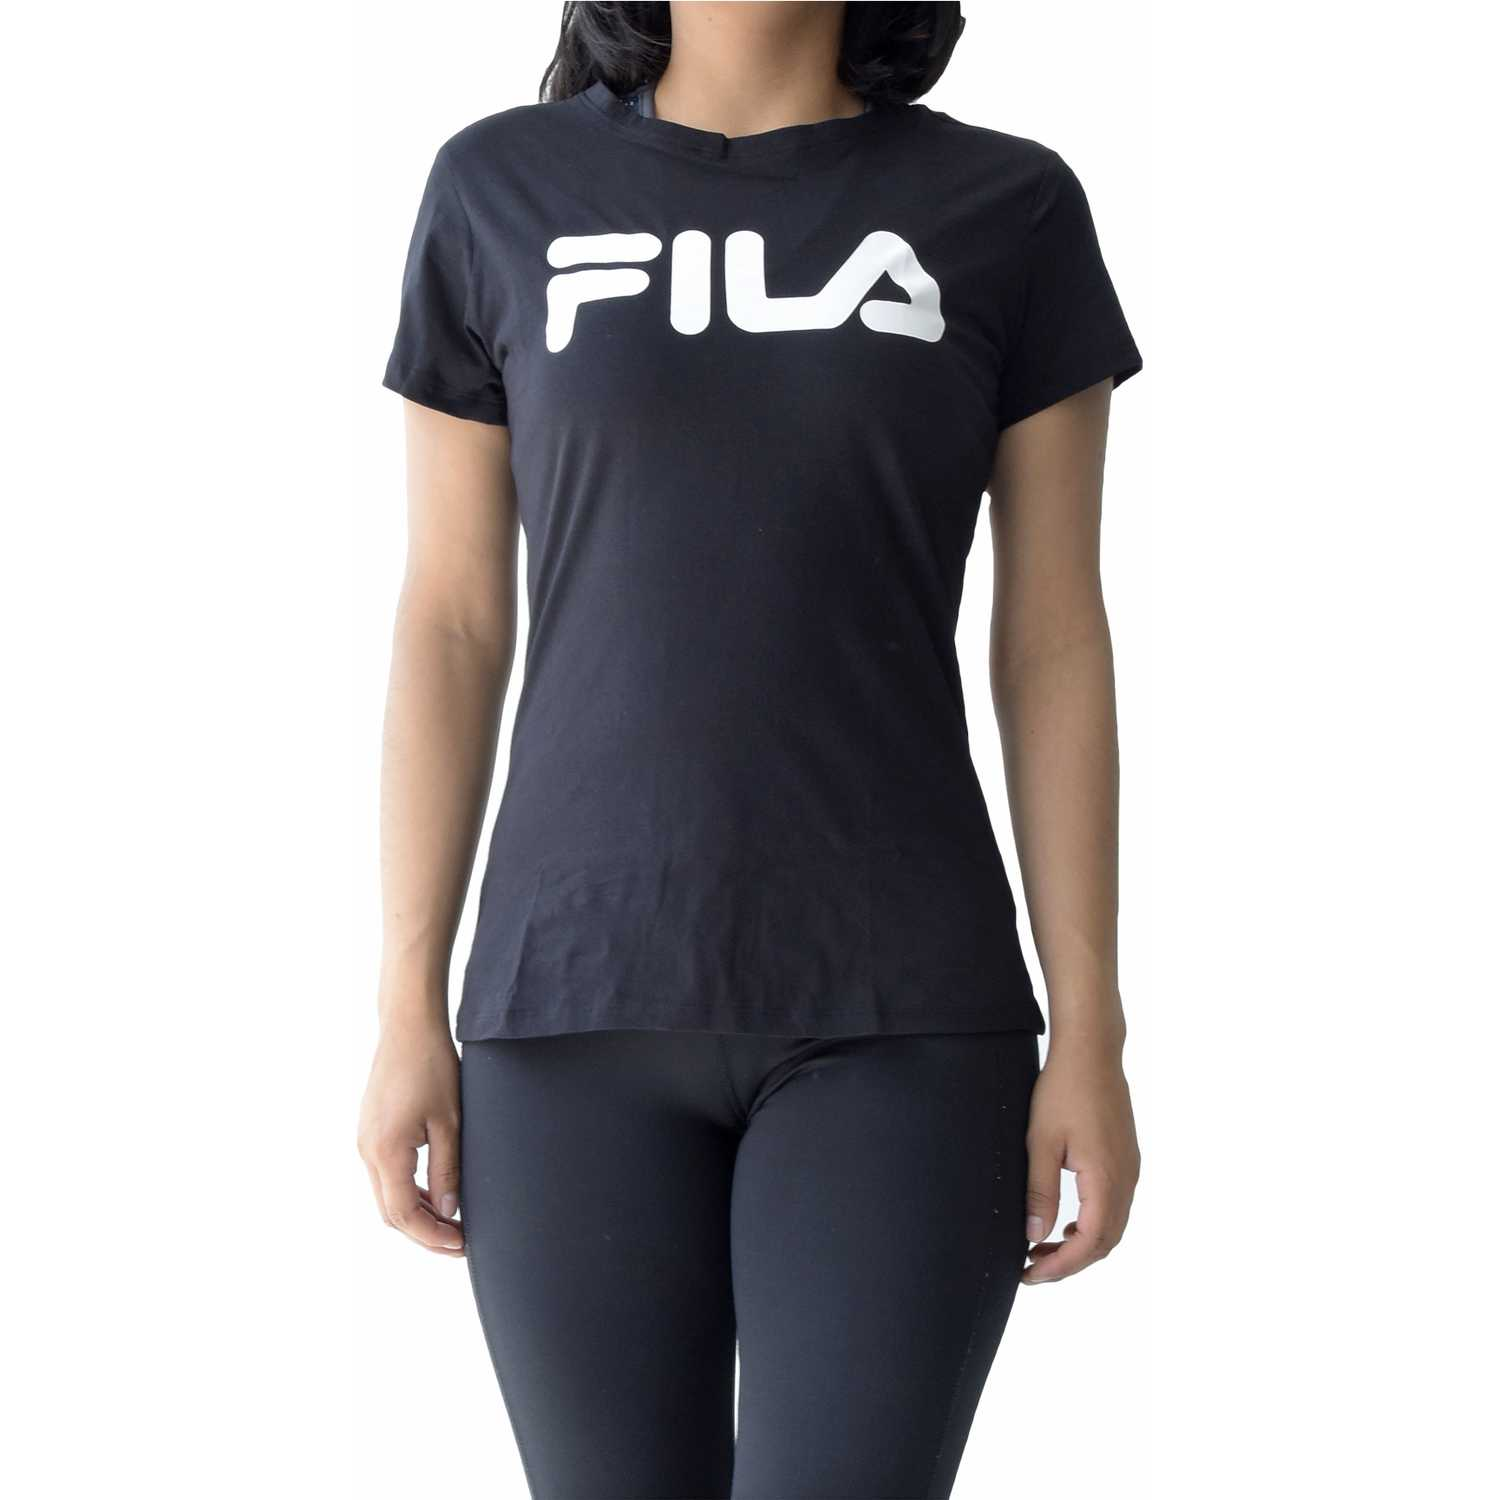 Fila women t-shirt letter new Negro / blanco Polos